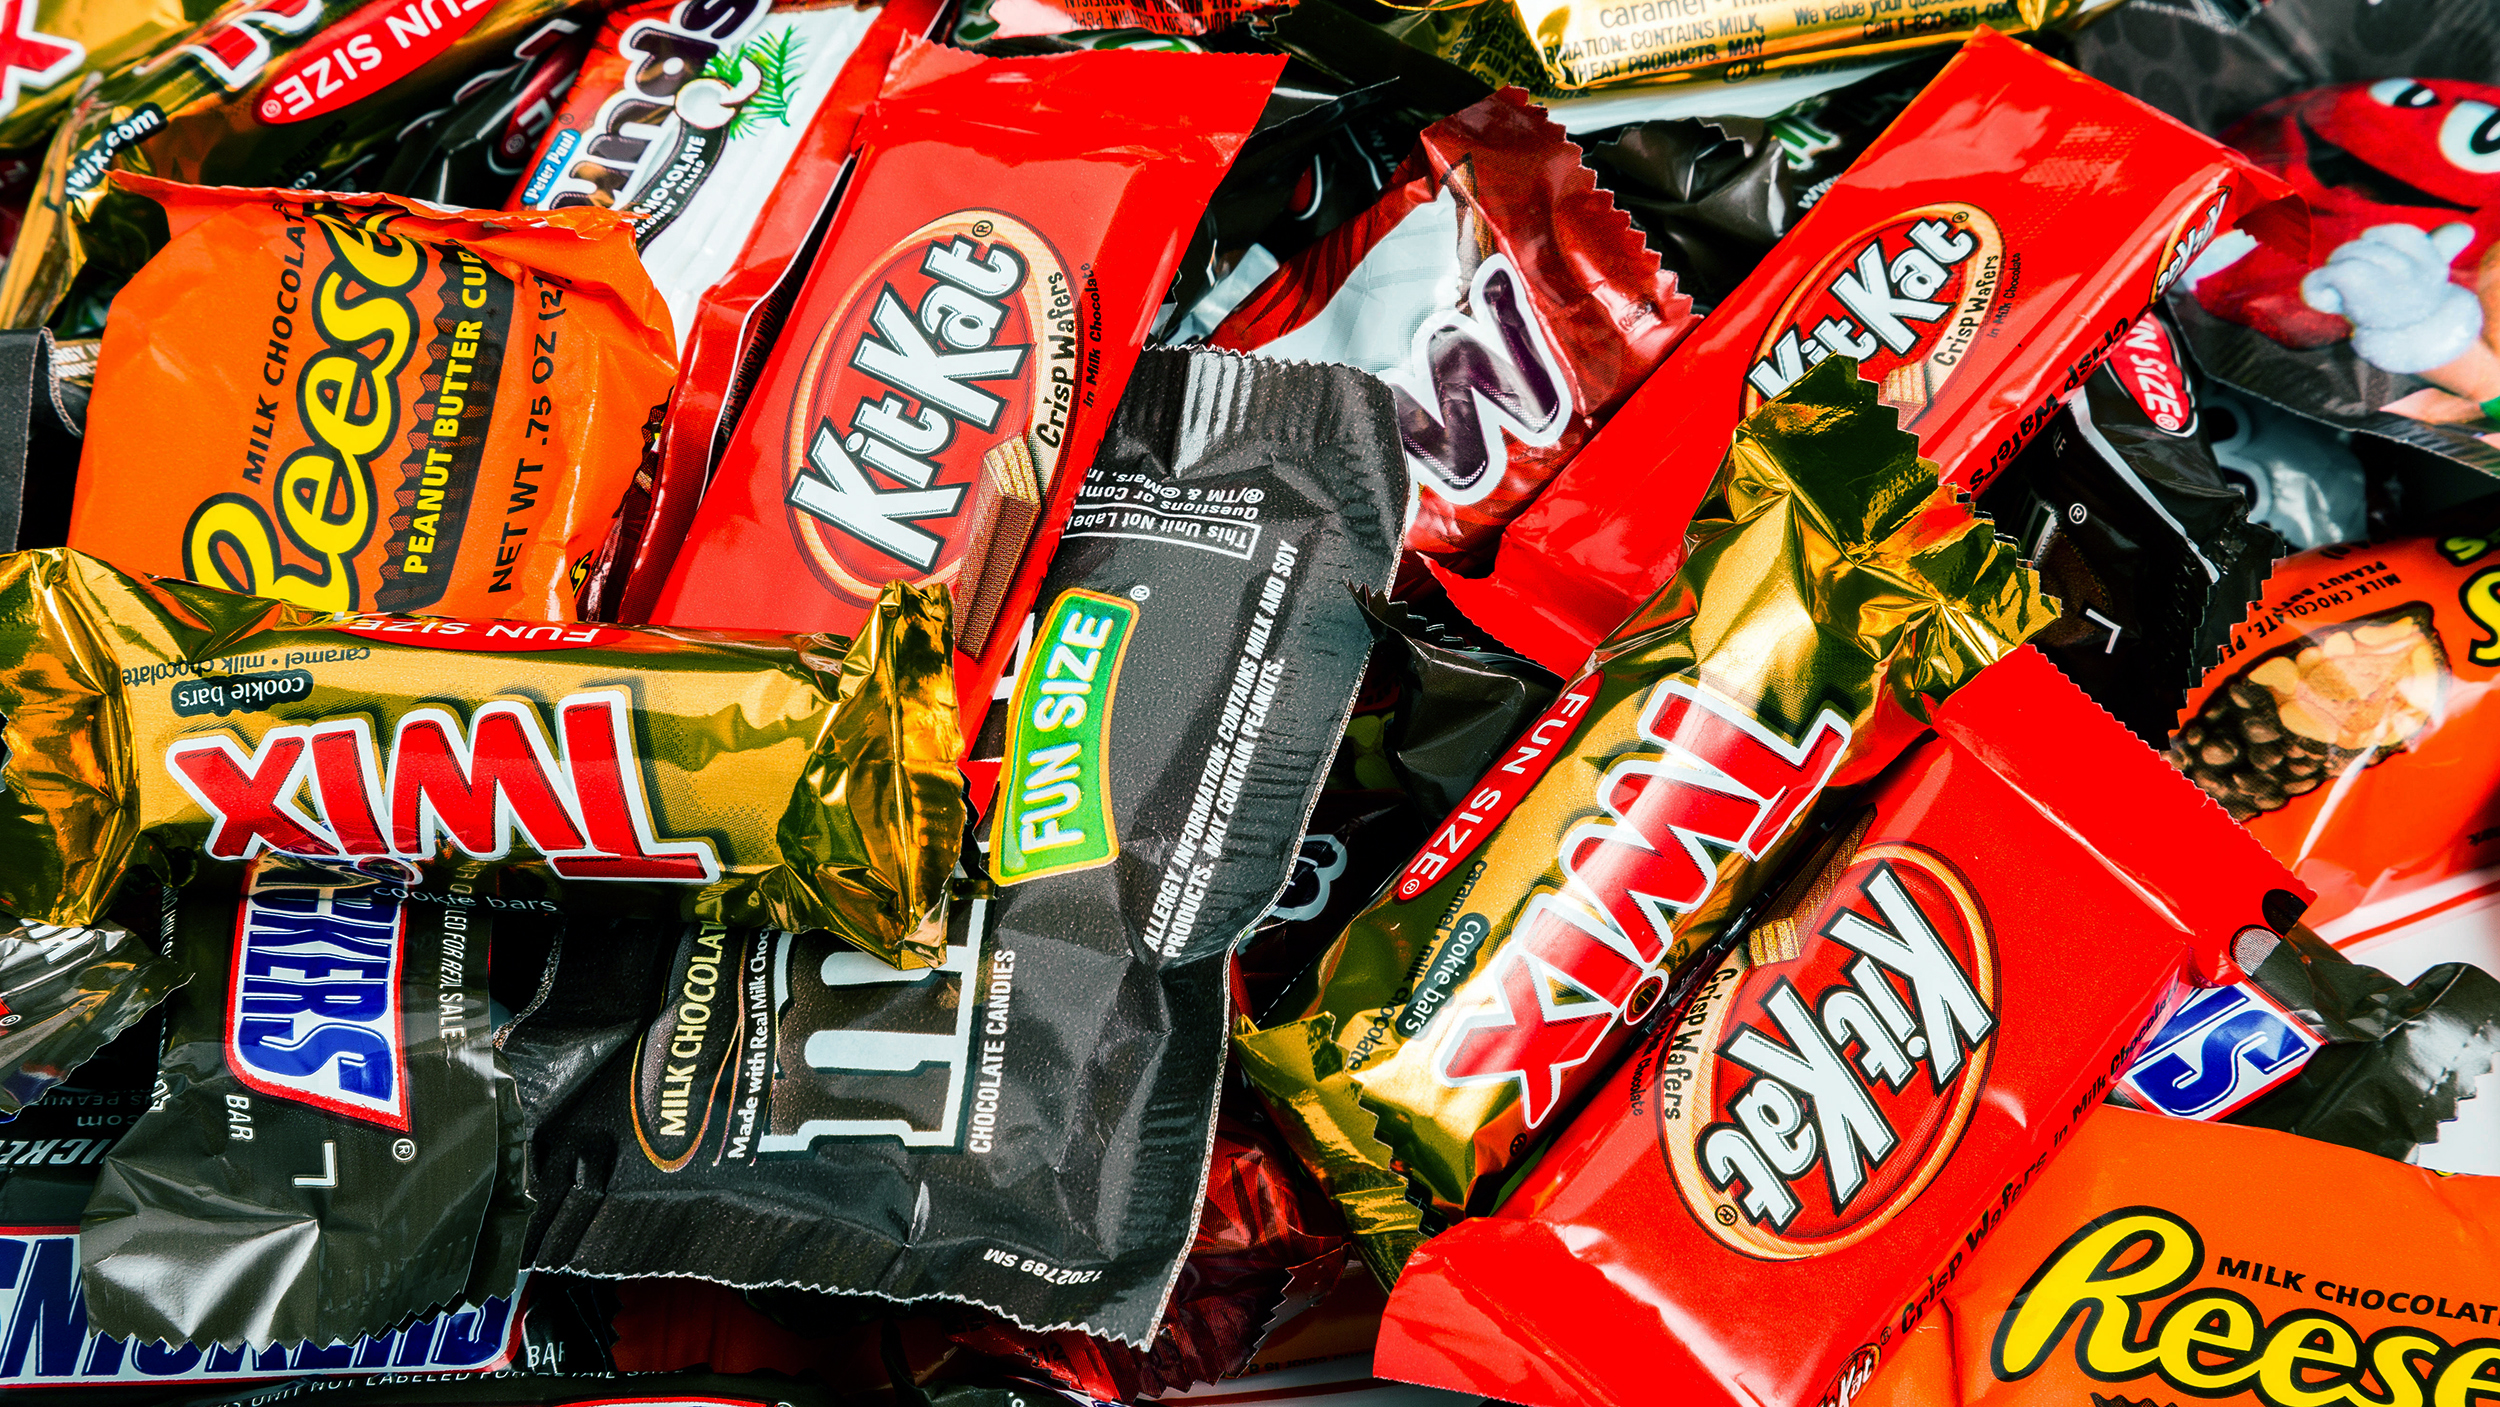 Donating Halloween Candy 2020 Bucks County How to donate Halloween candy to a good cause